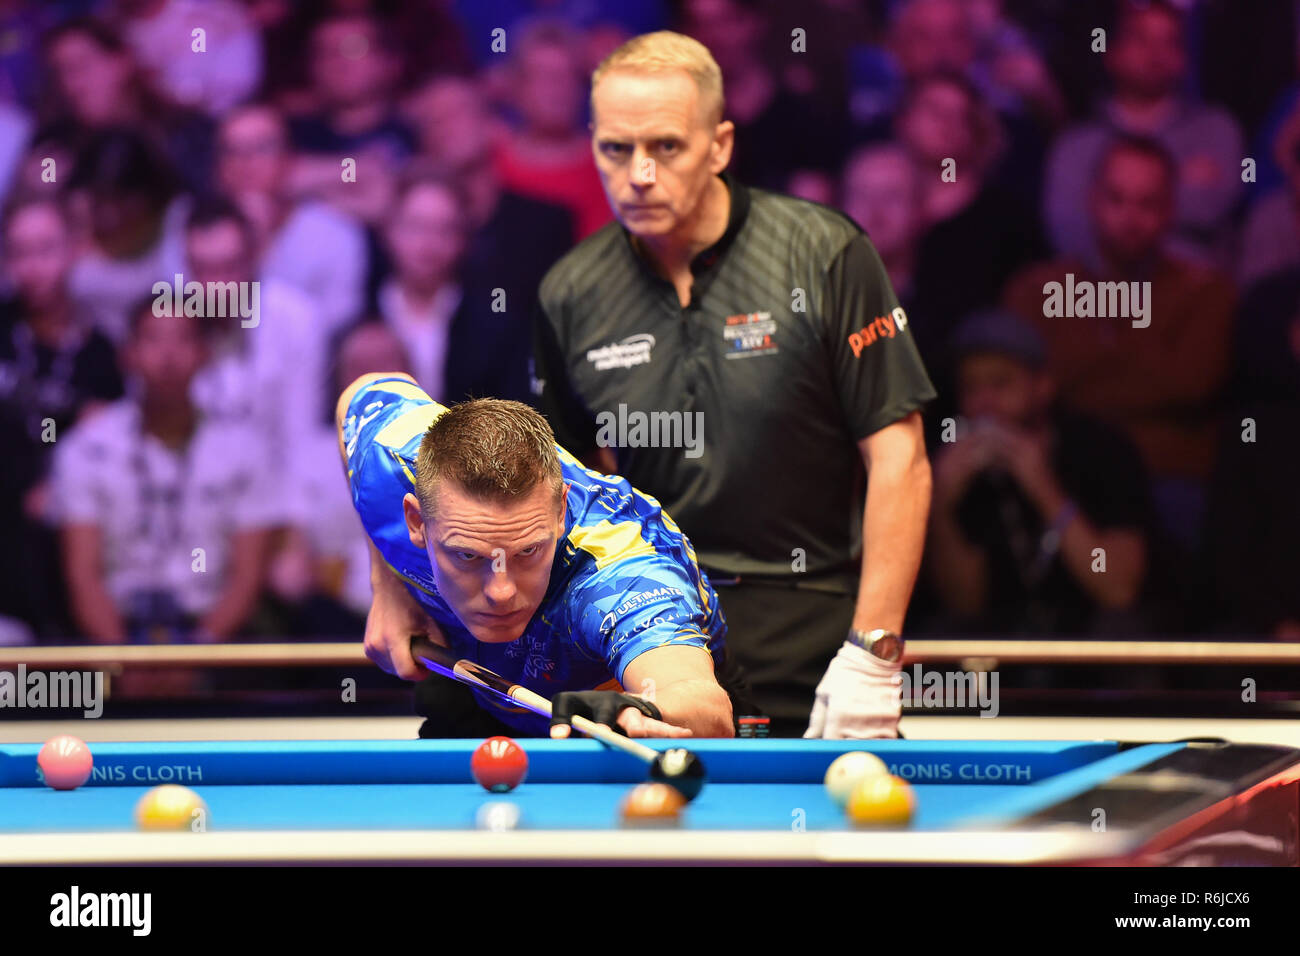 London, UK. 5th Dec, 2018. Alex Kazakis of Greece/Niels Feijen of The Netherlands during The Partypoker Mosconi Cup 2018: on Day 2 event - Niels Feijen/Alex Kazakis (EUR) v Skyler Woodward/Shane van Boening at Alexandra Palace on Wednesday, 05 December 2018. LONDON, ENGLAND. (Editorial use only, license required for commercial use. No use in betting, games or a single club/league/player publications.) Credit: Taka Wu/Alamy Live News - Stock Image